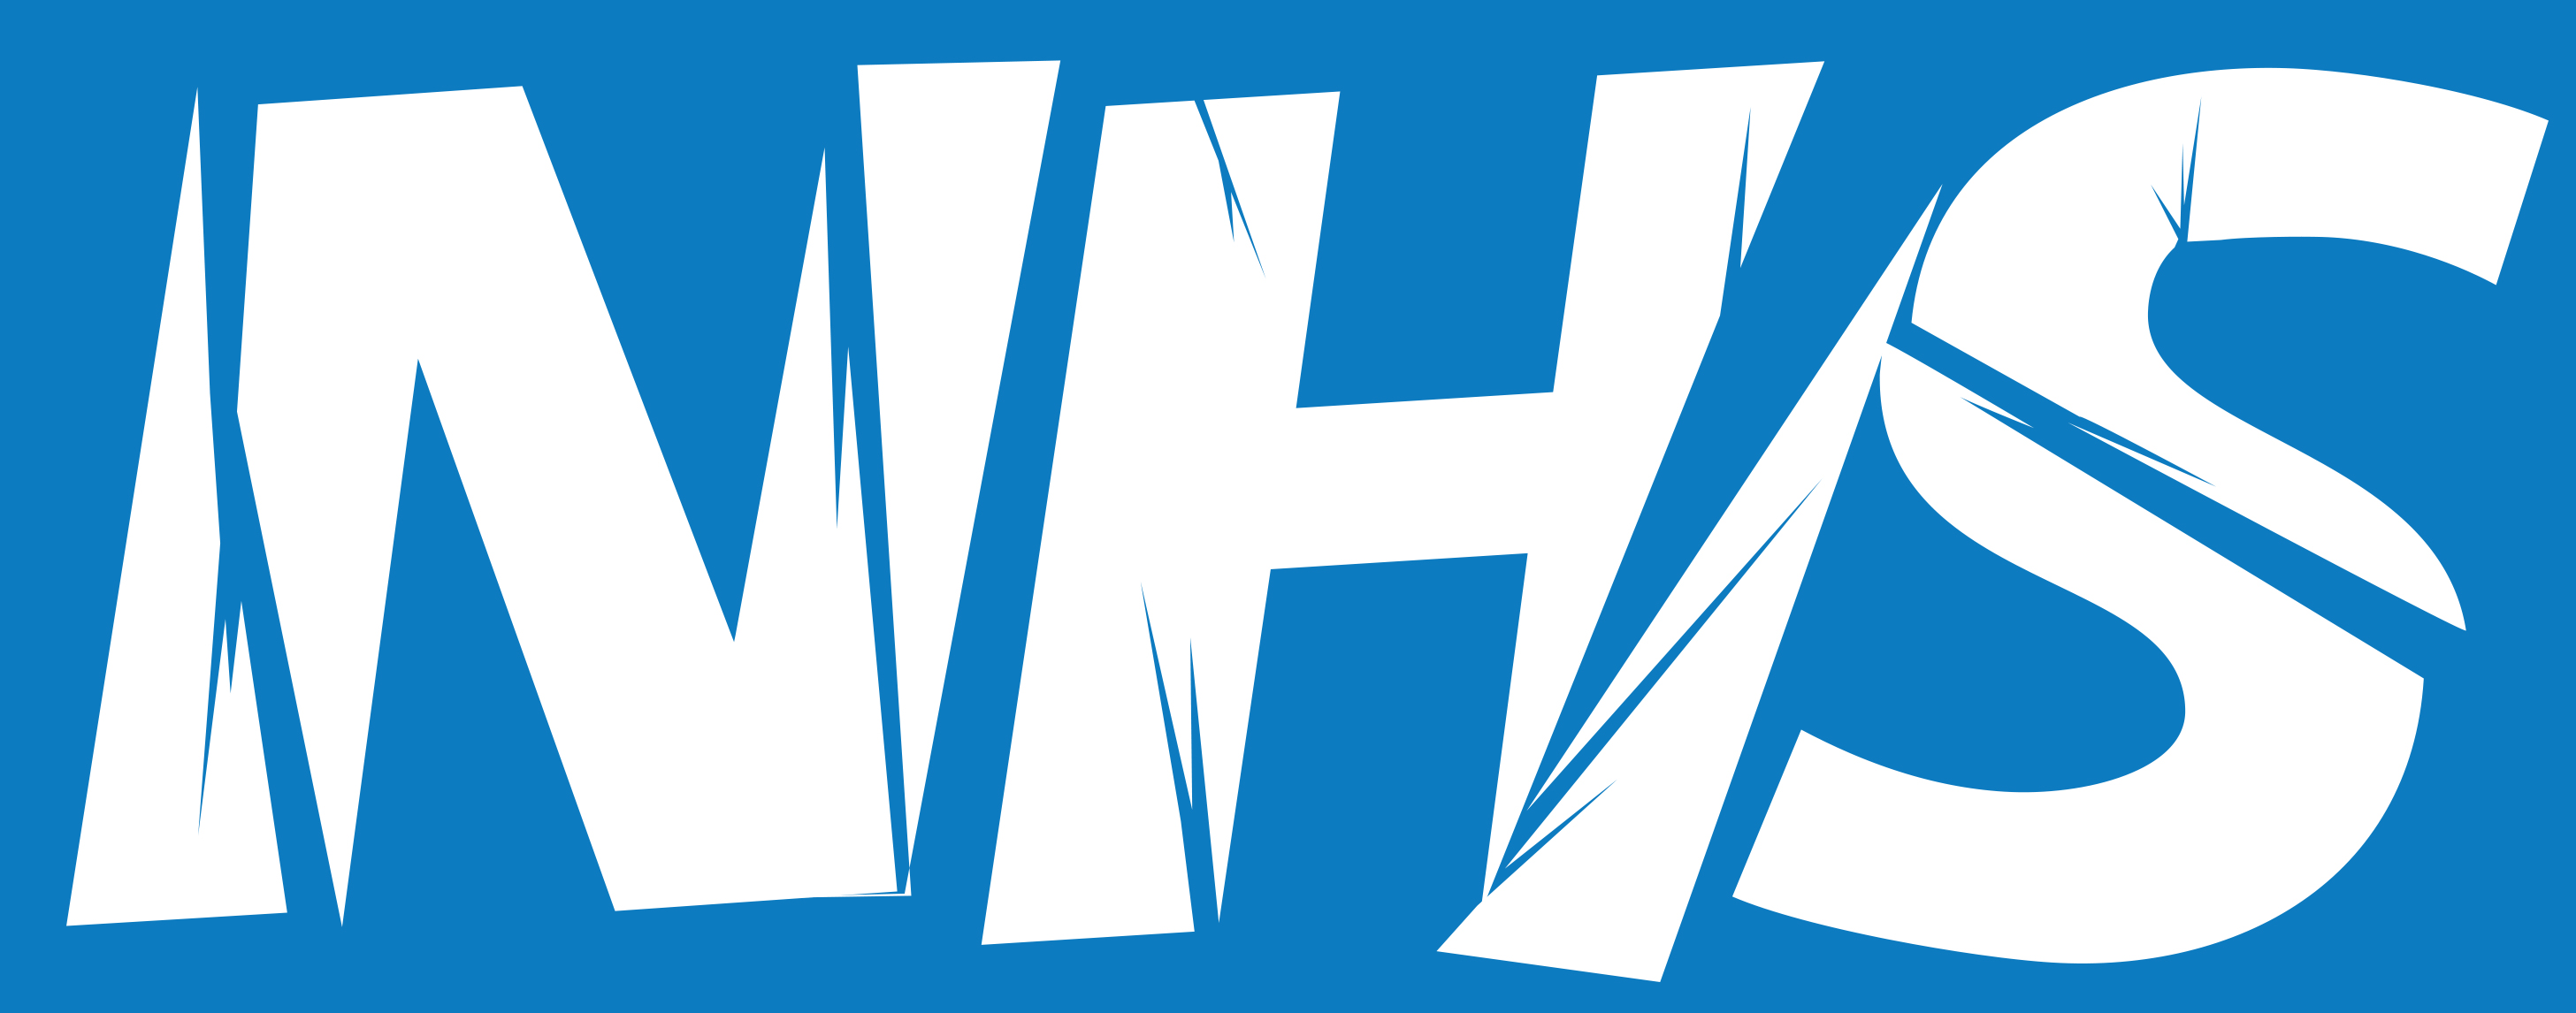 NHS is broken - fix it now